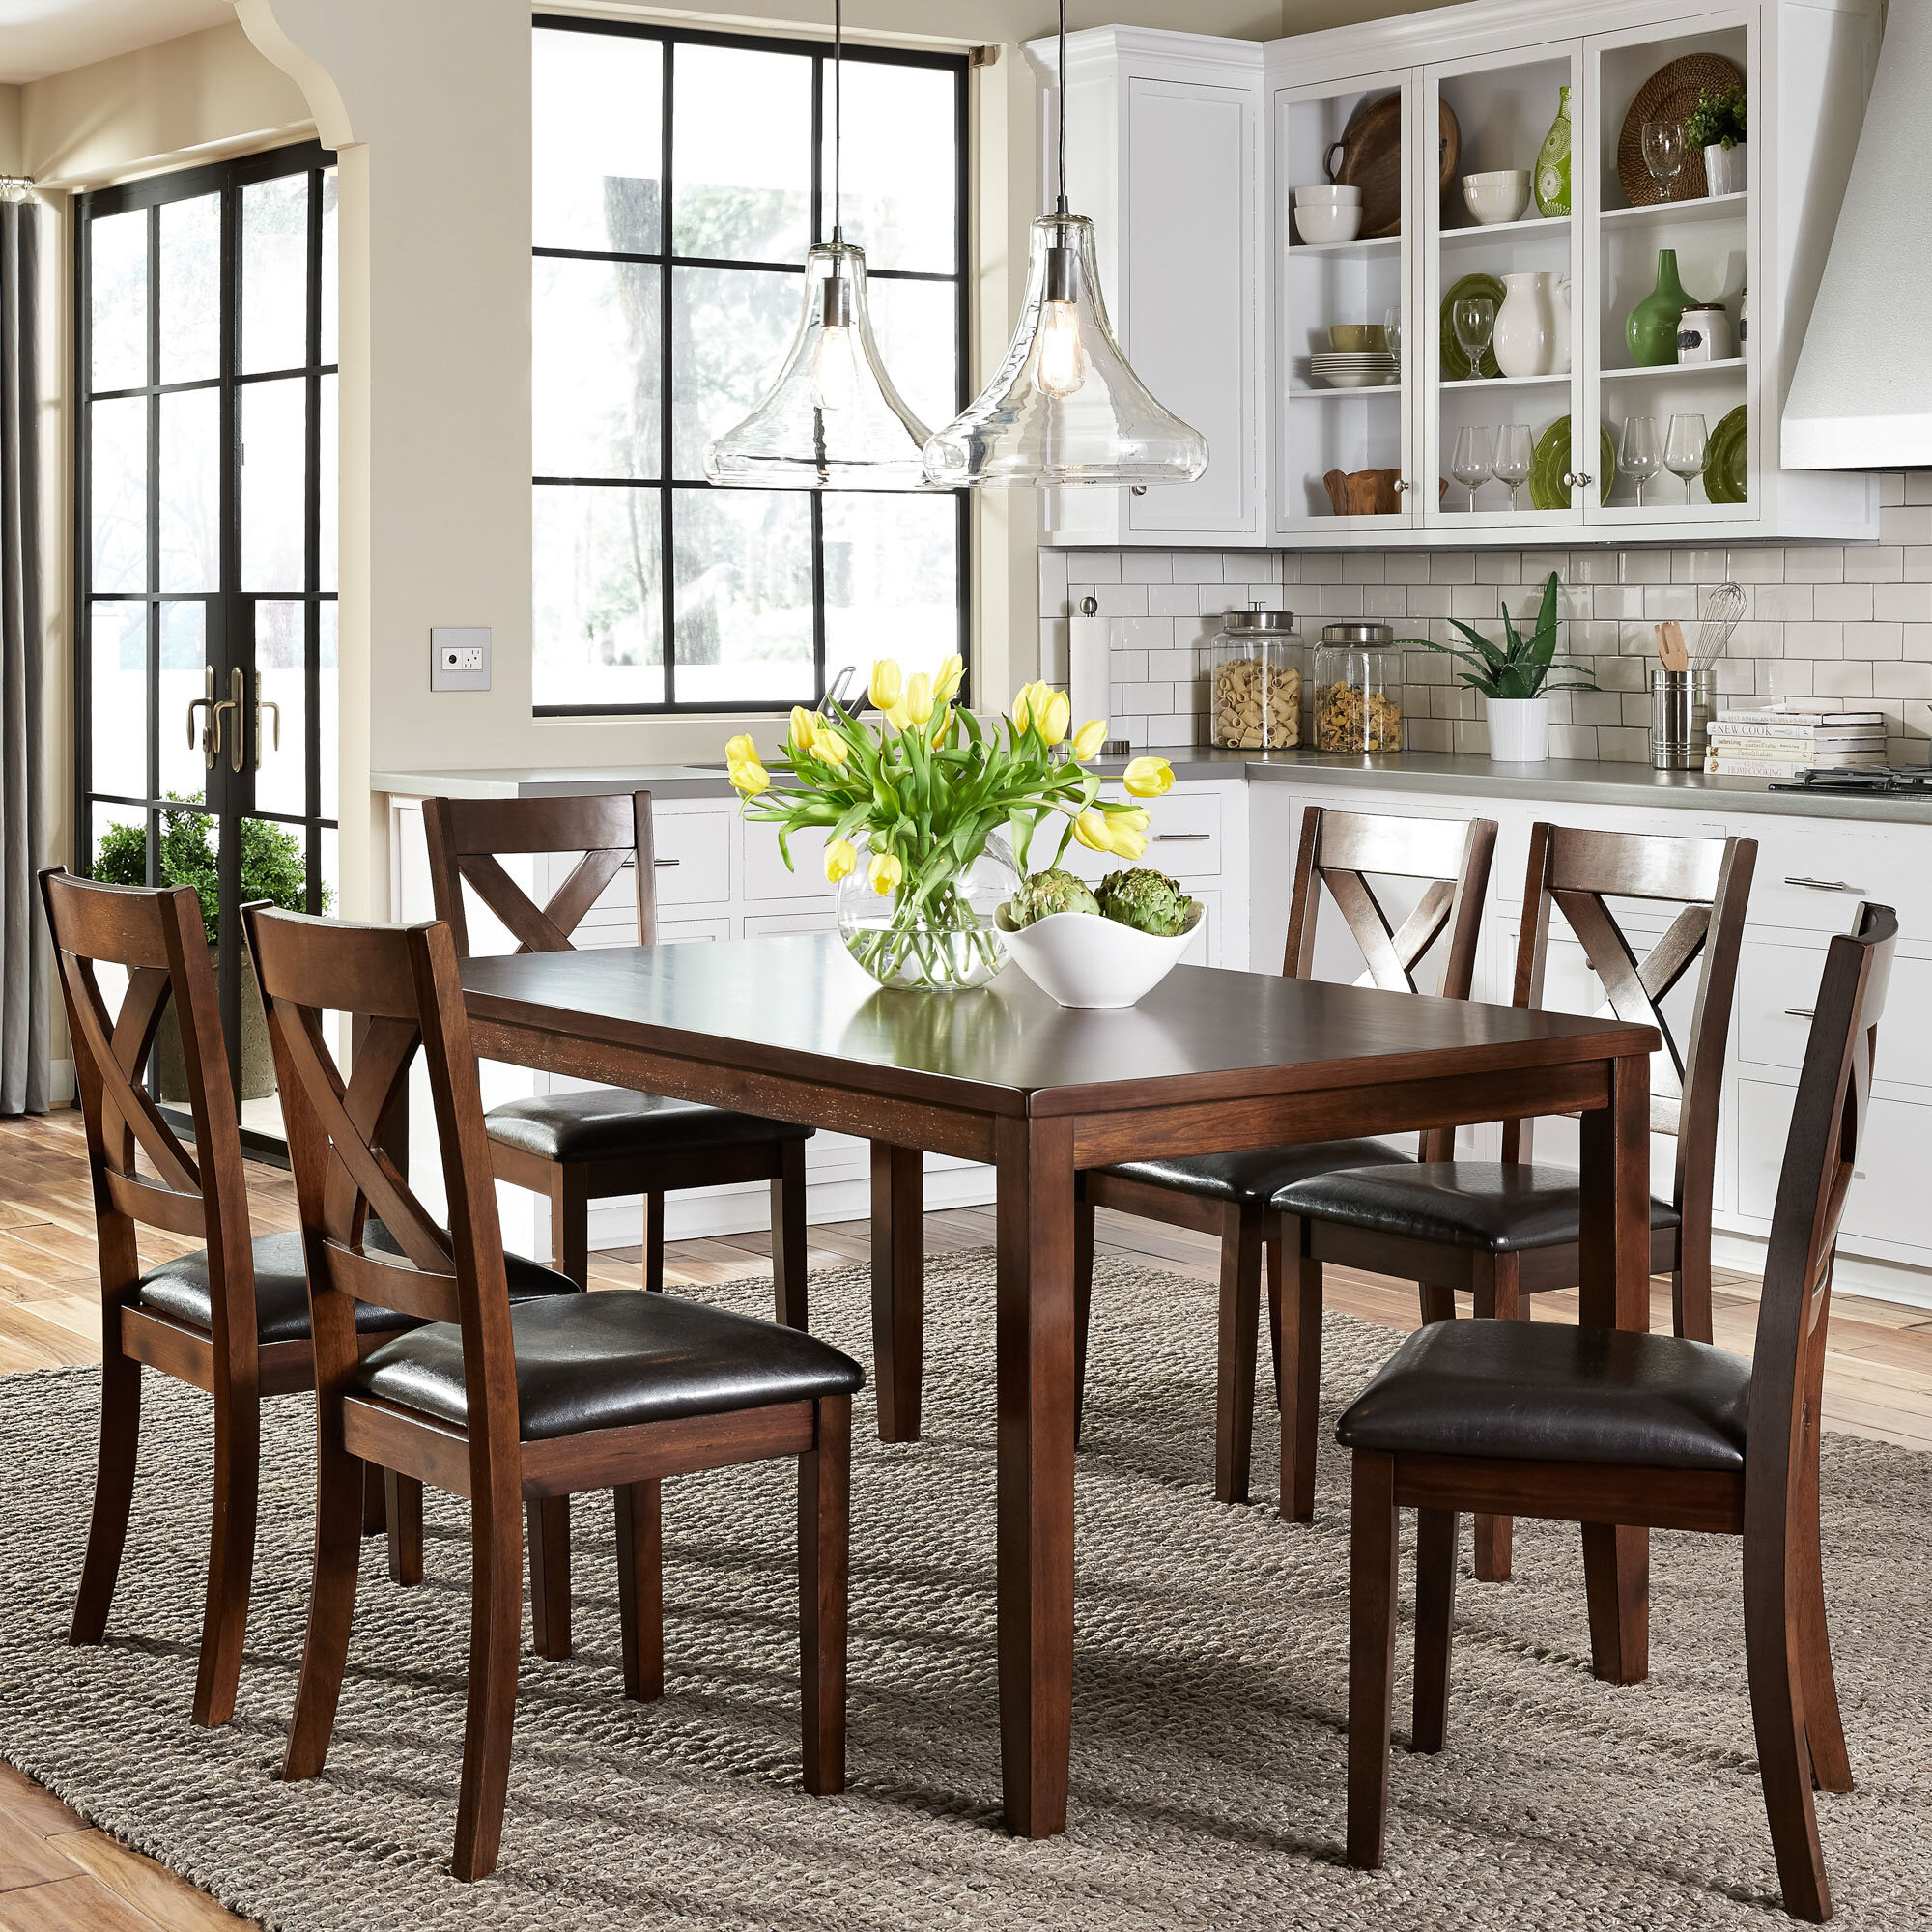 Seats 6 Kitchen & Dining Room Sets You'll Love in 2021 | Wayfair